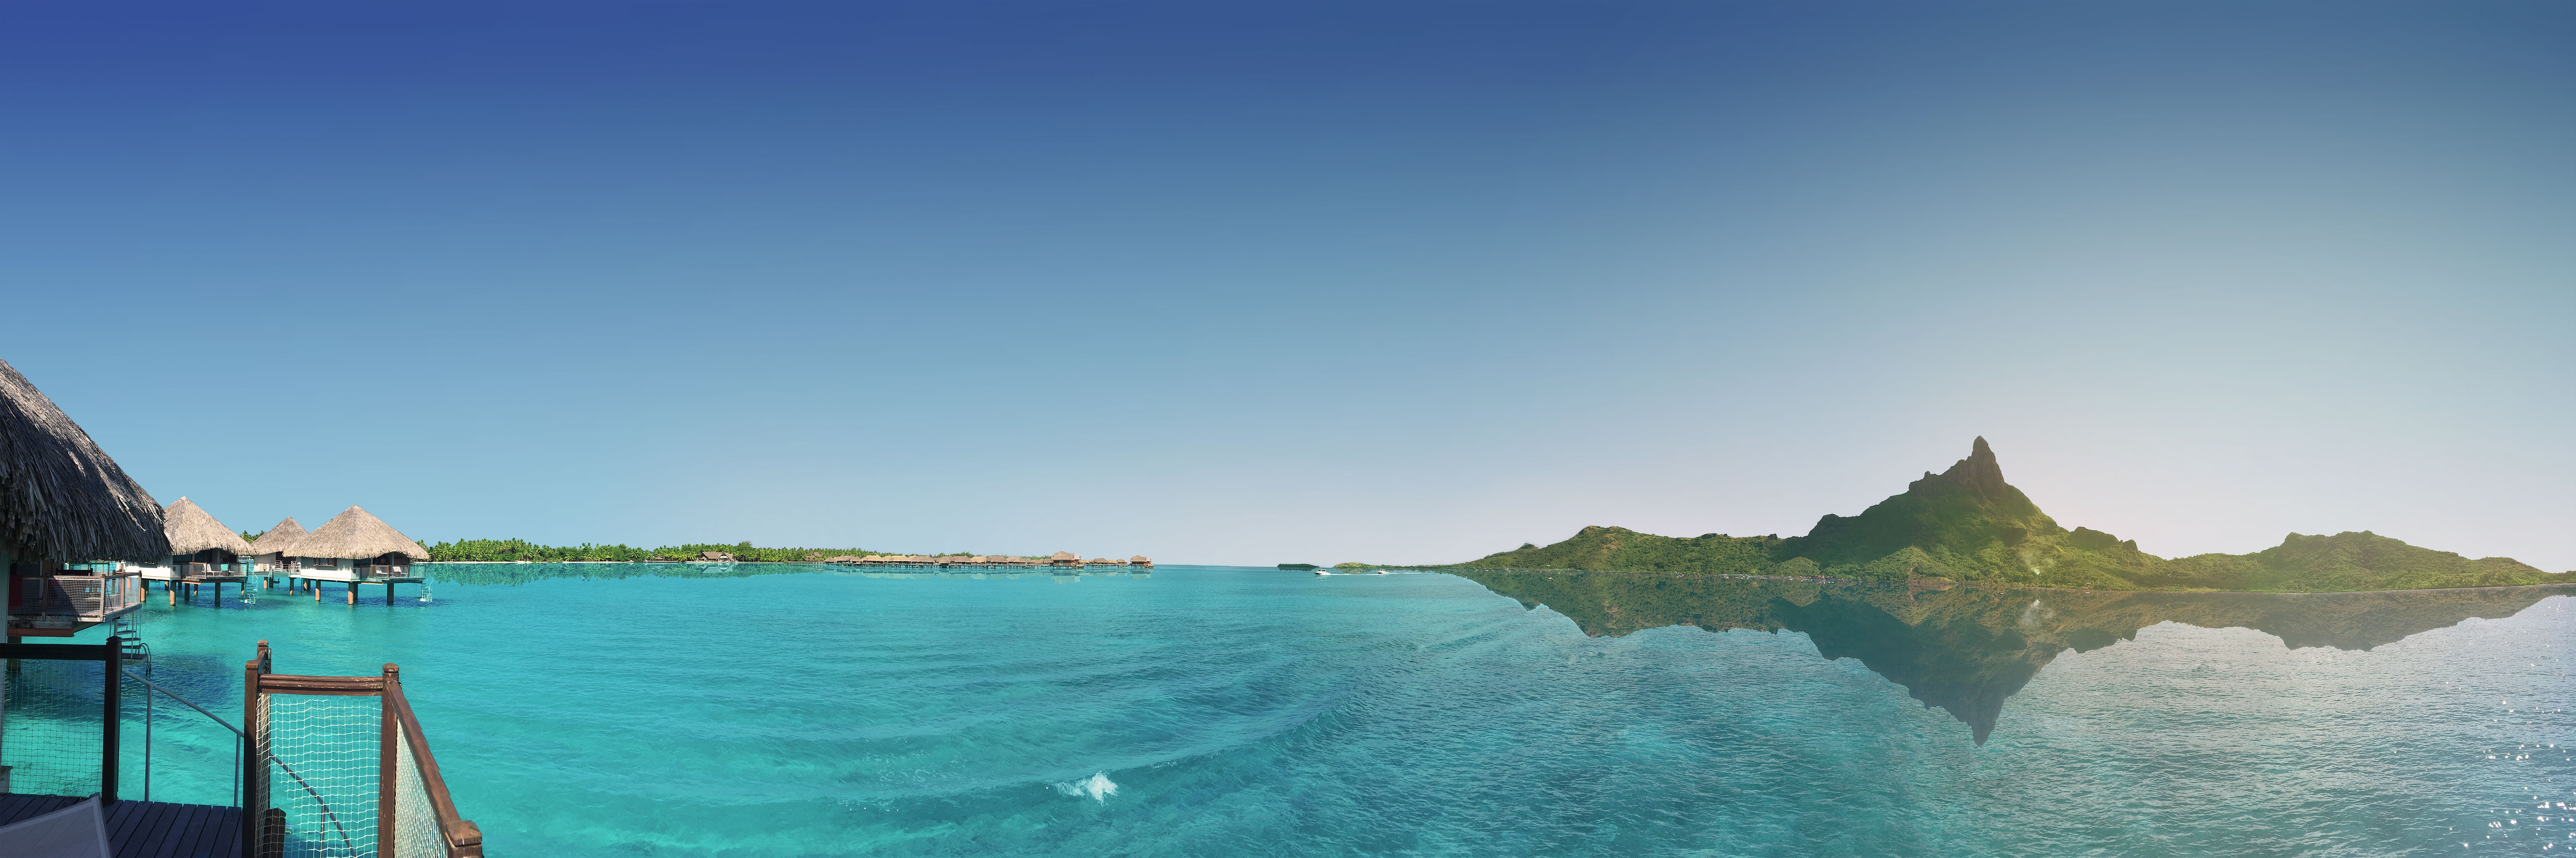 Bora Bora French Polynesian island 4K wallpaper background, large 360 panorama of the crystal blue water, mount Otemanu, stilt houses and palm trees, from Le Méridien Bora Hotel. (Nos Dren)